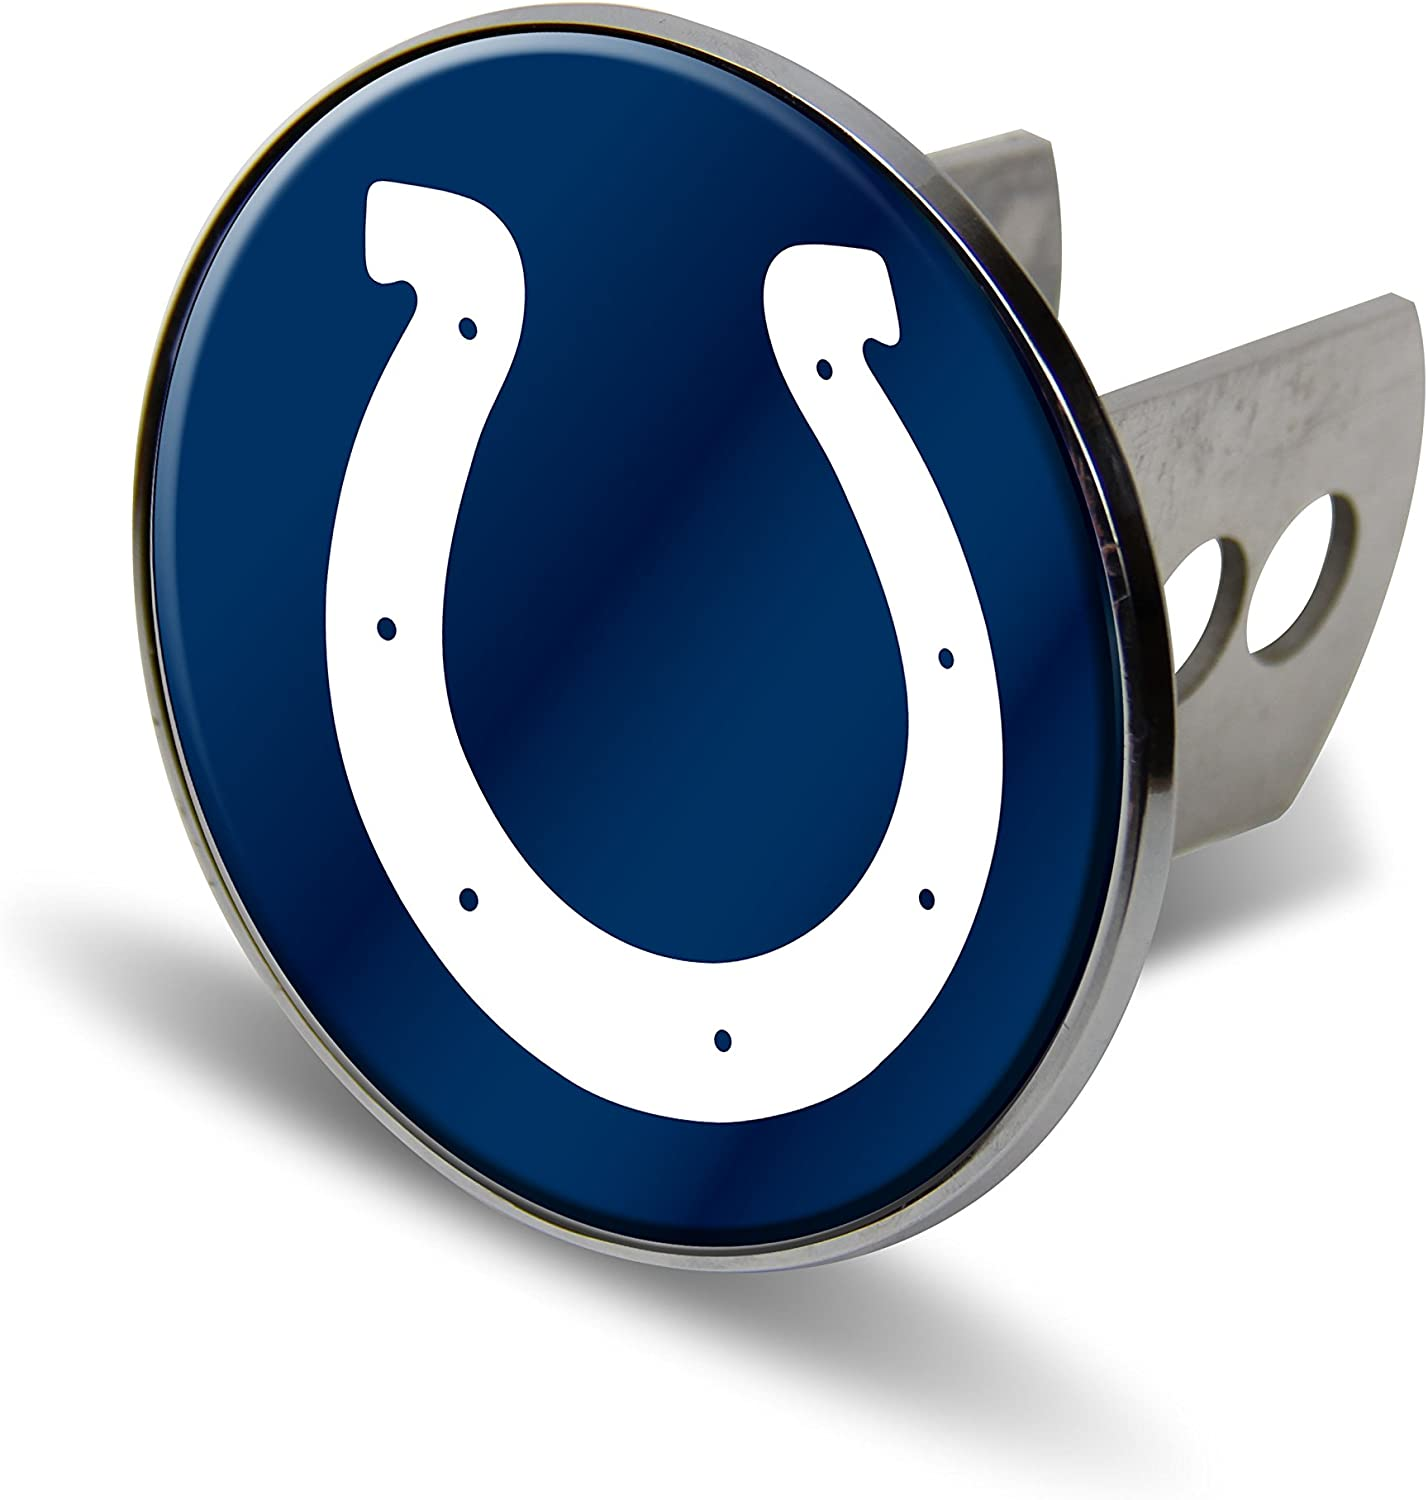 NFL Indianapolis Colts Laser Cut Metal Hitch Cover, Large, Silver